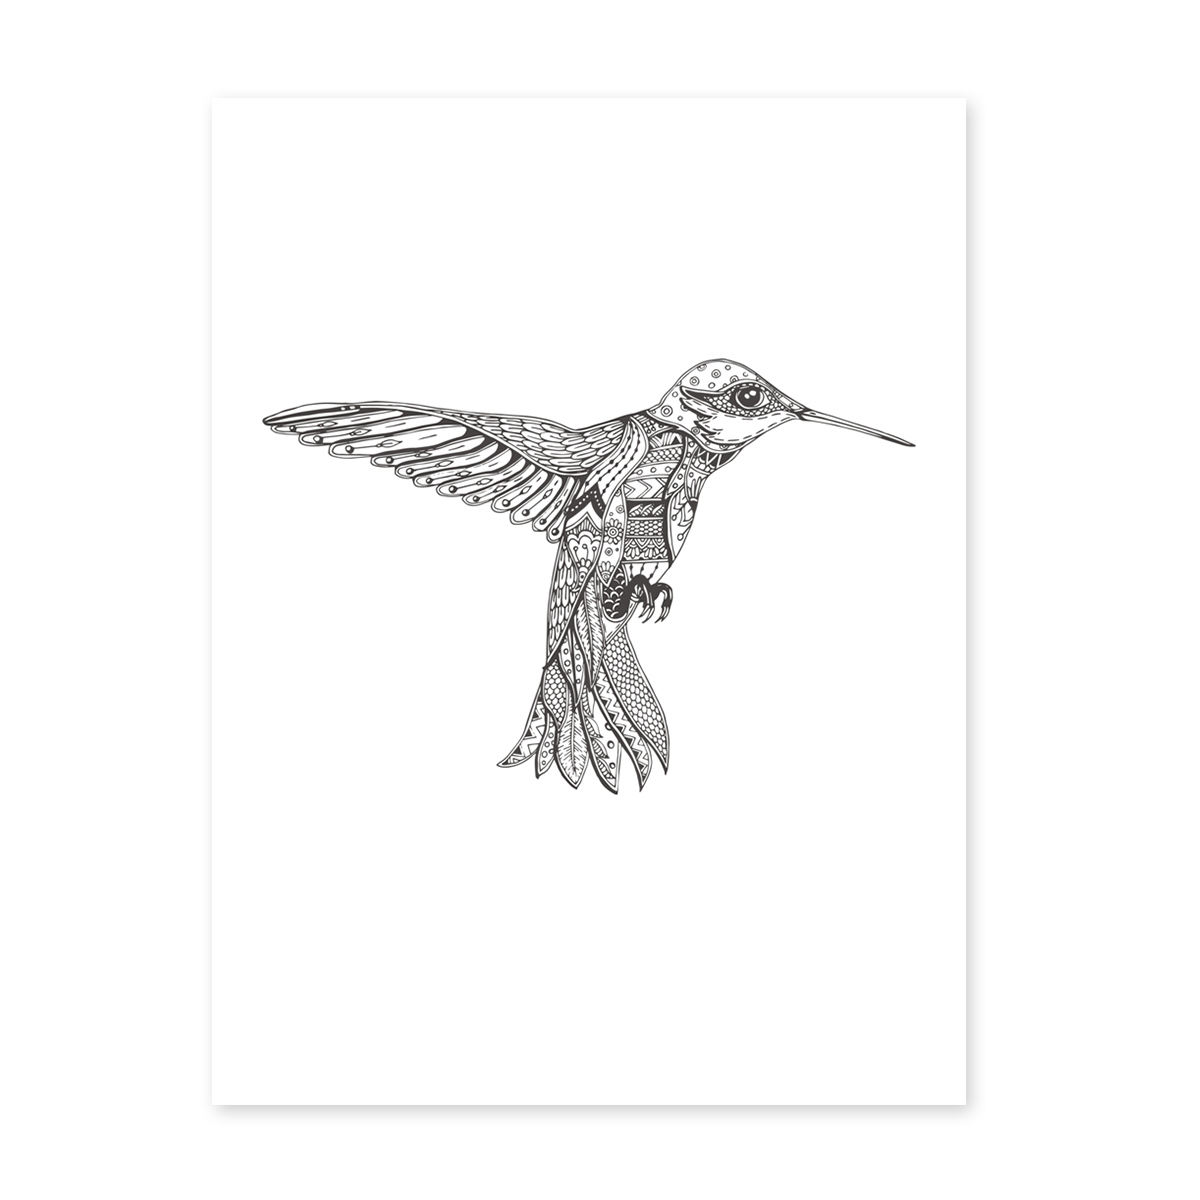 design poster 39 kolibri 39 30x40 cm schwarz weiss motiv vogel zeichnung poster design motive. Black Bedroom Furniture Sets. Home Design Ideas